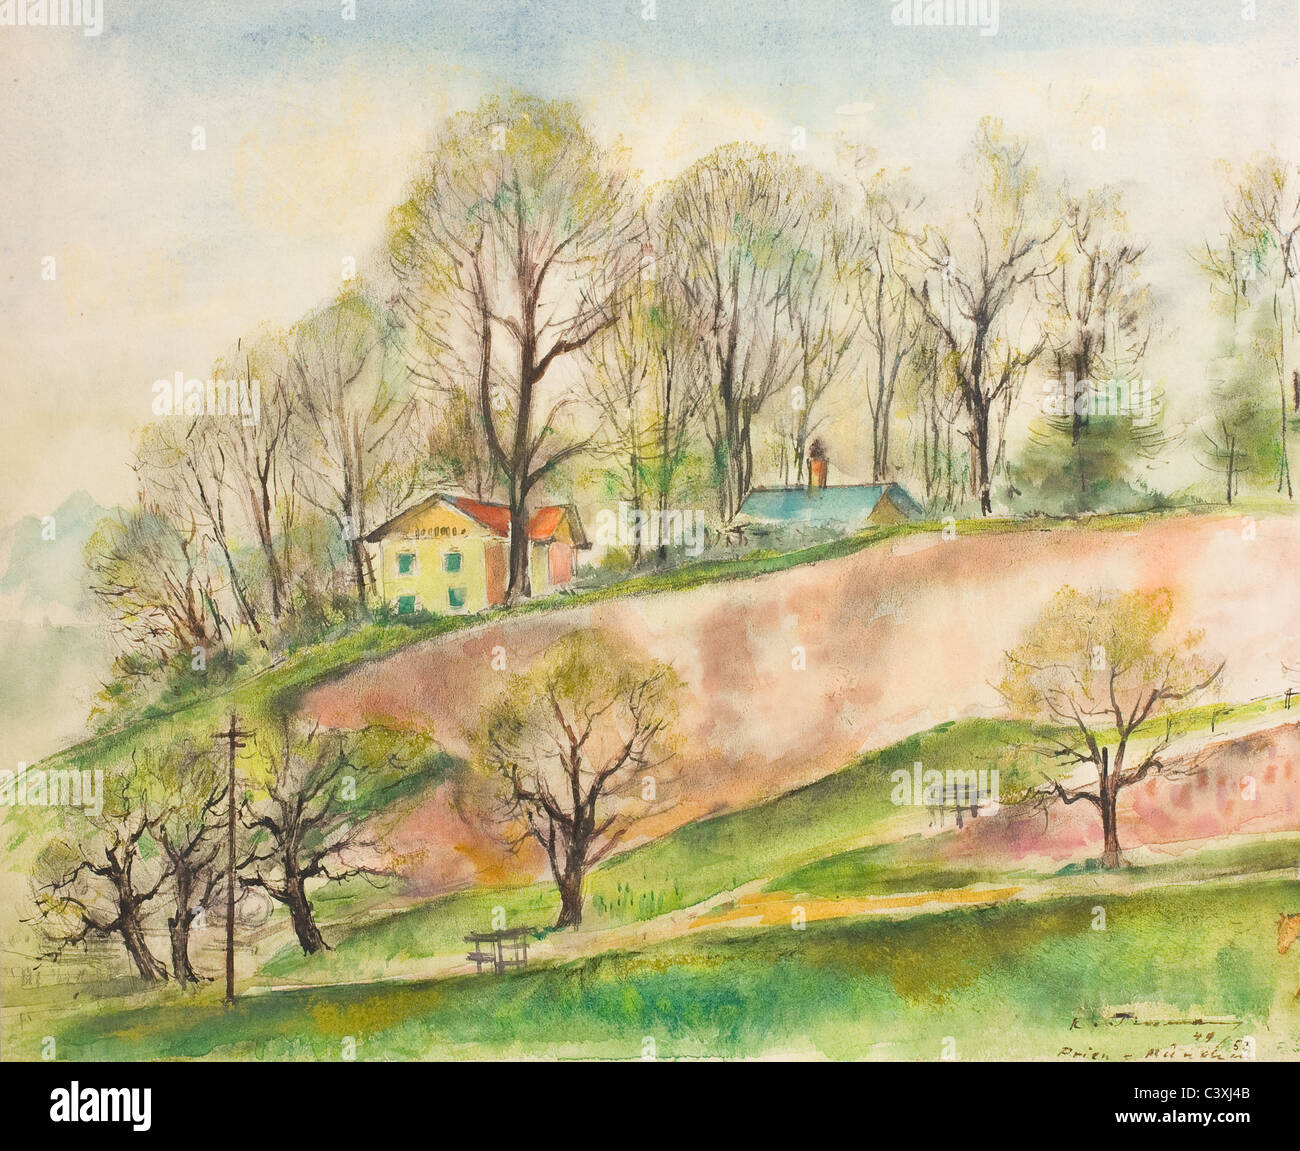 Landscape painting near the city of Prien - water color on paper by Kurt Tessmann Stock Photo